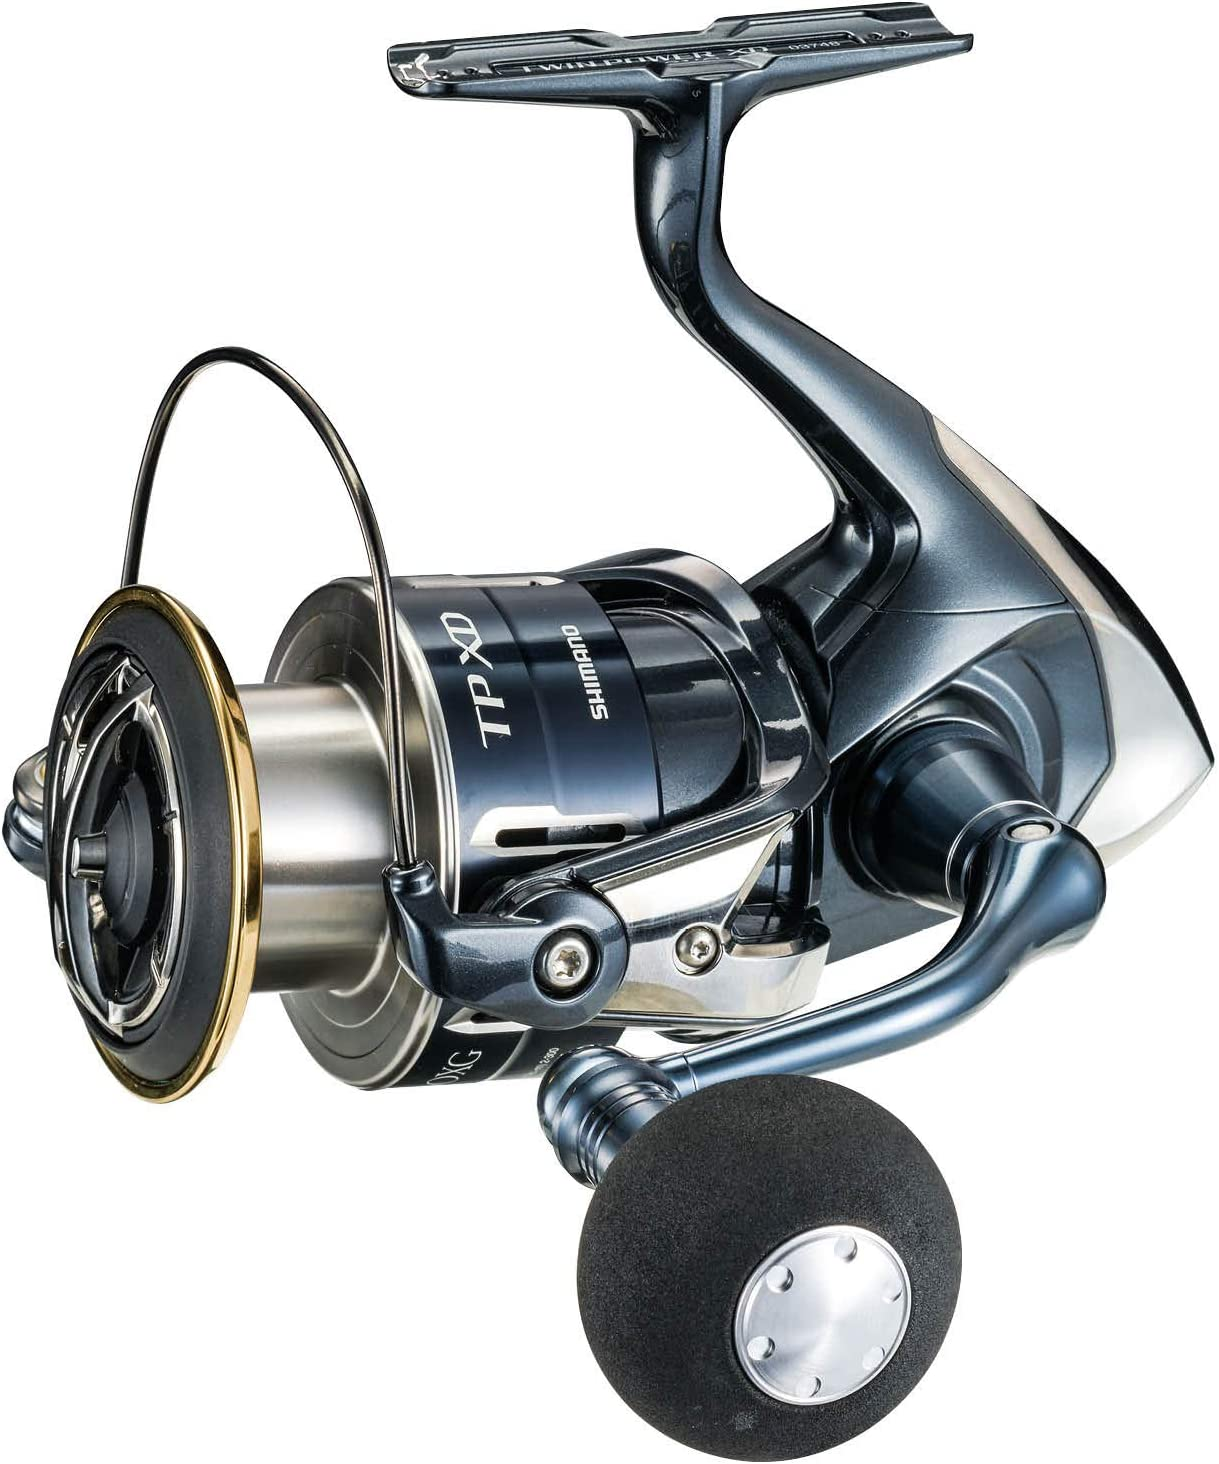 Shimano Twin Power Spinning discount Xd Max 83% OFF Reel